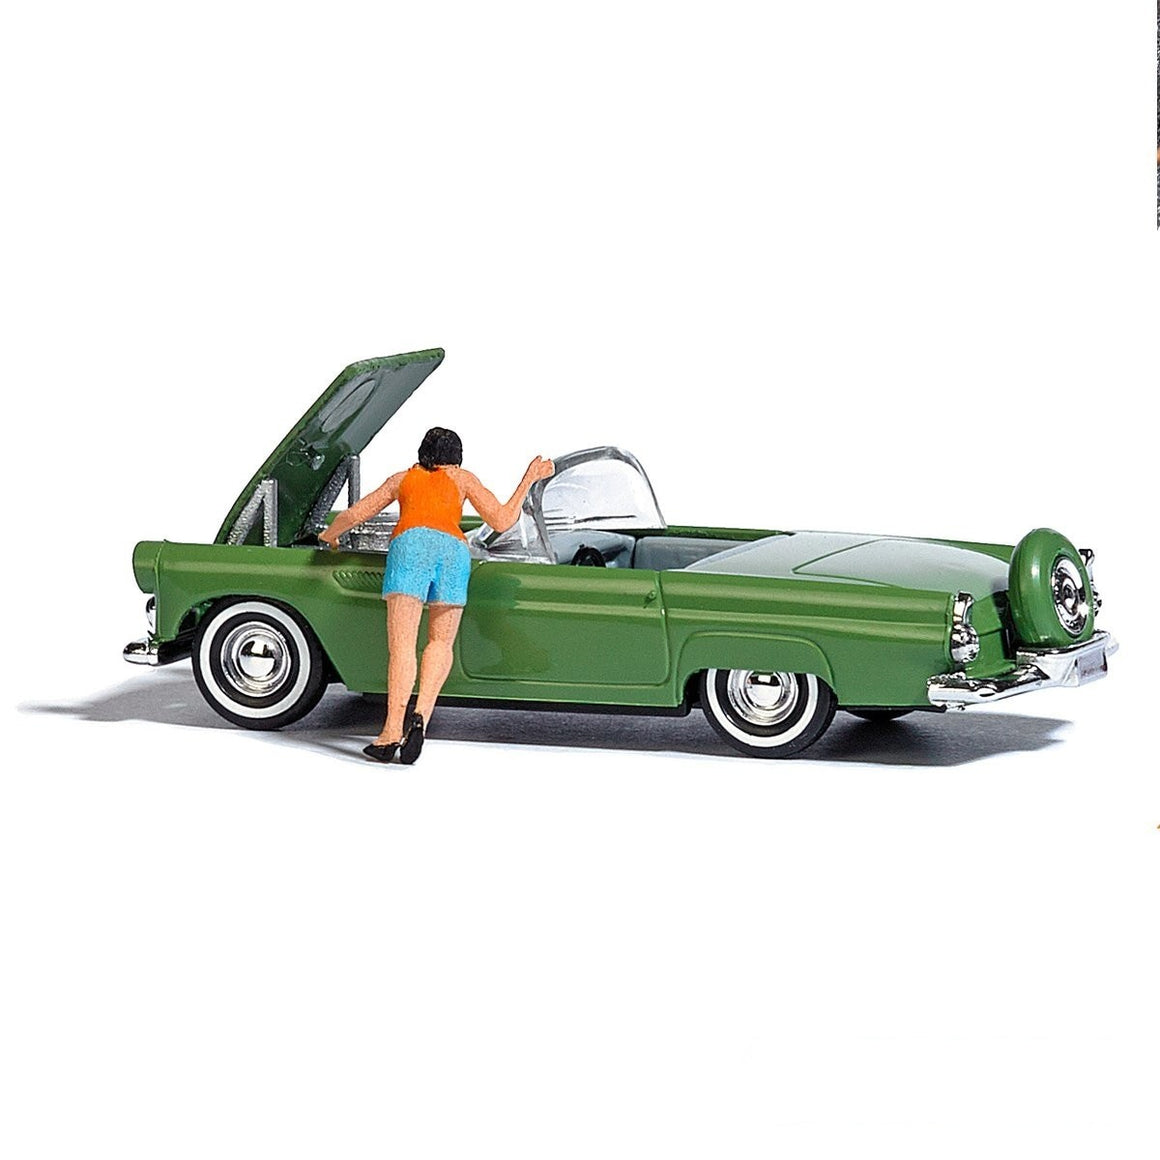 "HO Scale: 1950s Ford Thunderbird -  ""Motor Show"" Complete Scene"